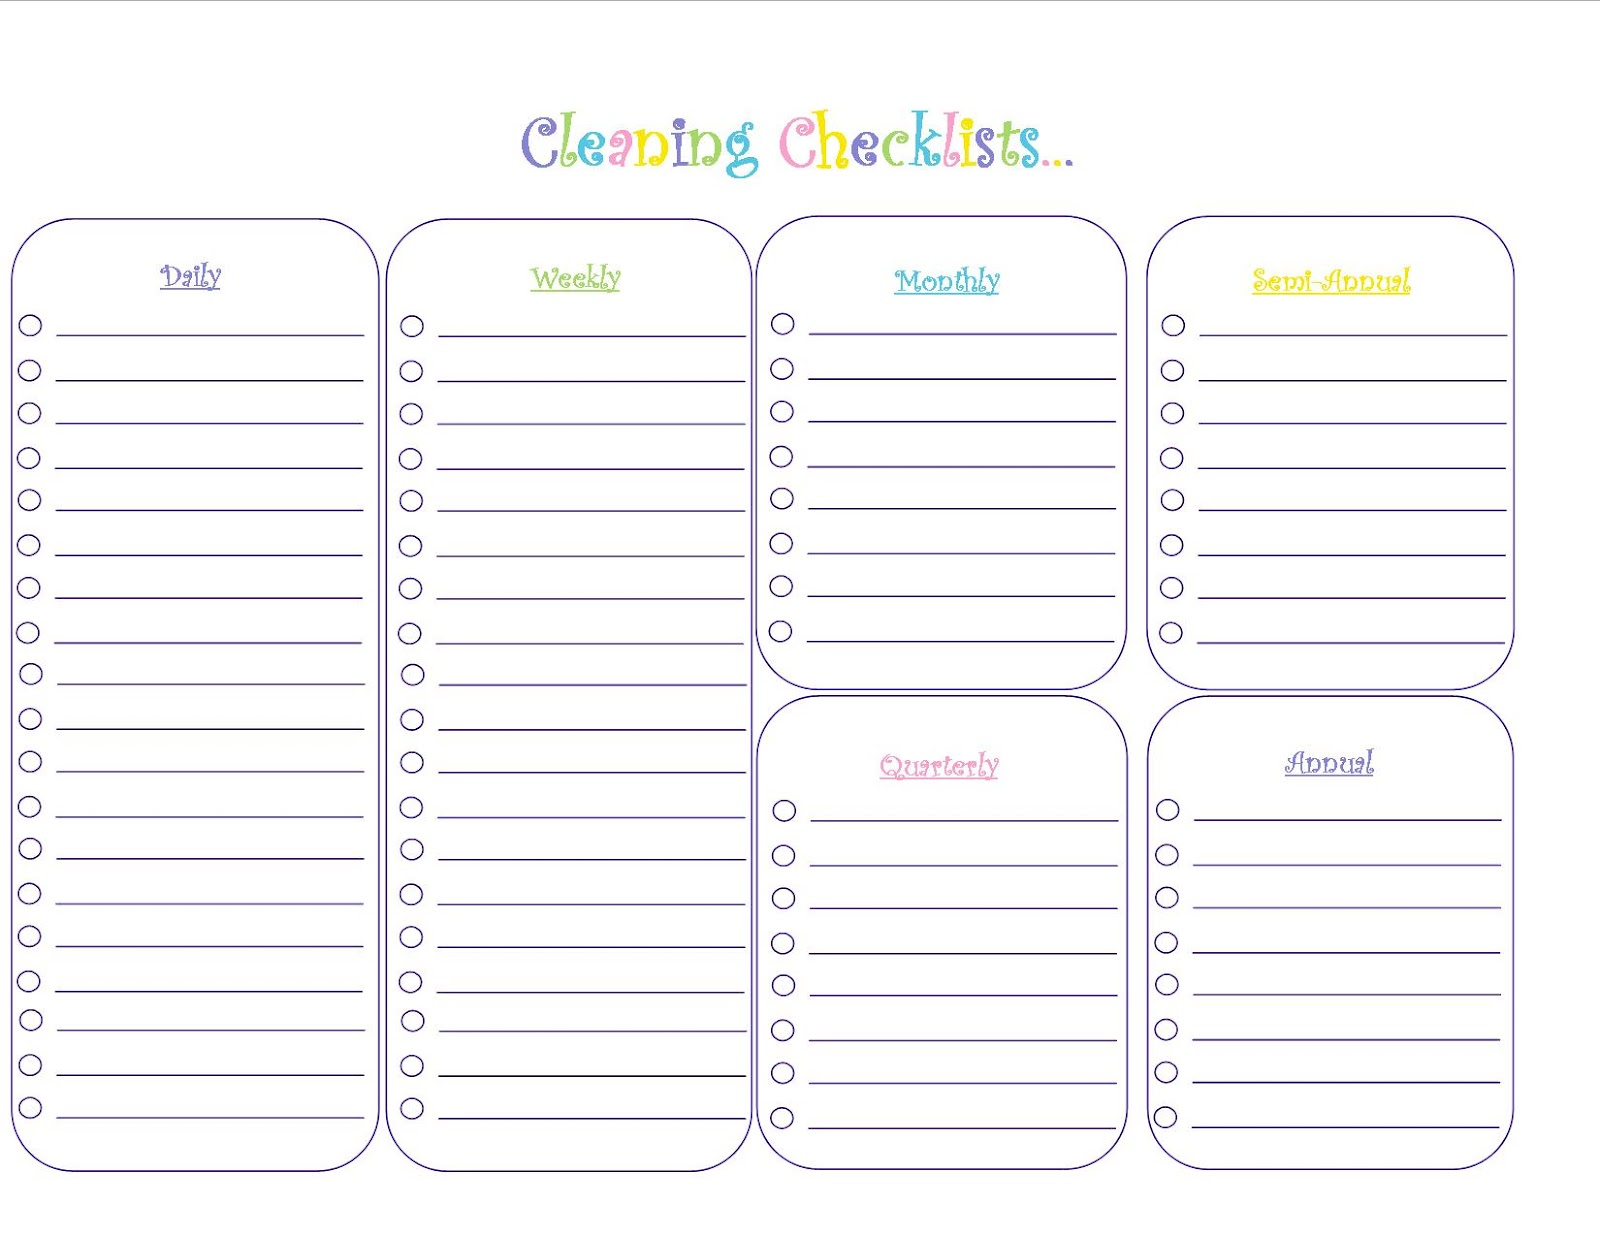 House Cleaning Weekly Checklist Template